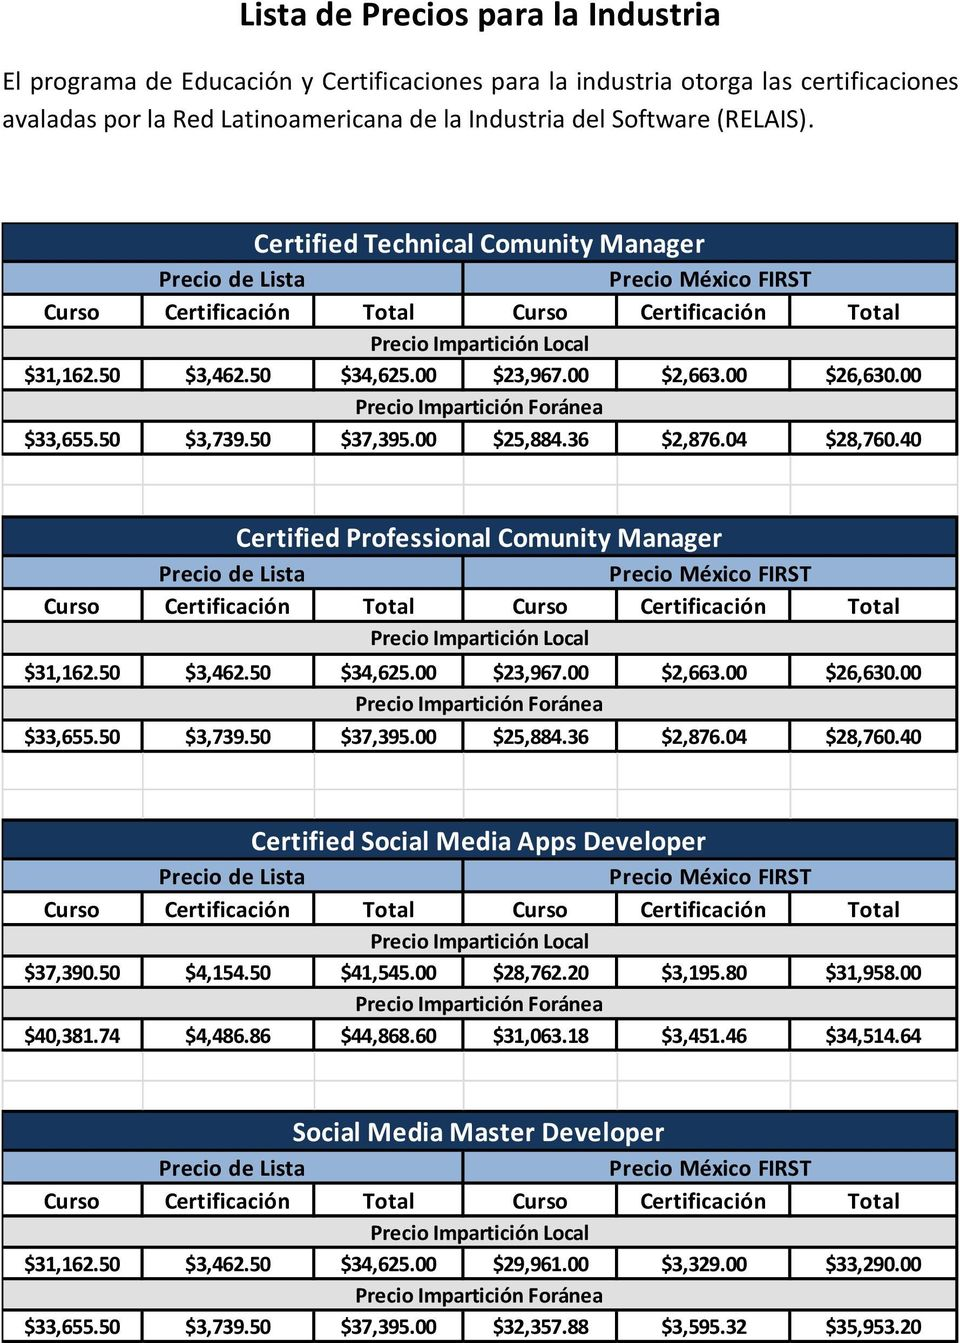 40 Certified Professional Comunity Manager $31,162.50 $3,462.50 $34,625.00 $23,967.00 $2,663.00 $26,630.00 $33,655.50 $3,739.50 $37,395.00 $25,884.36 $2,876.04 $28,760.